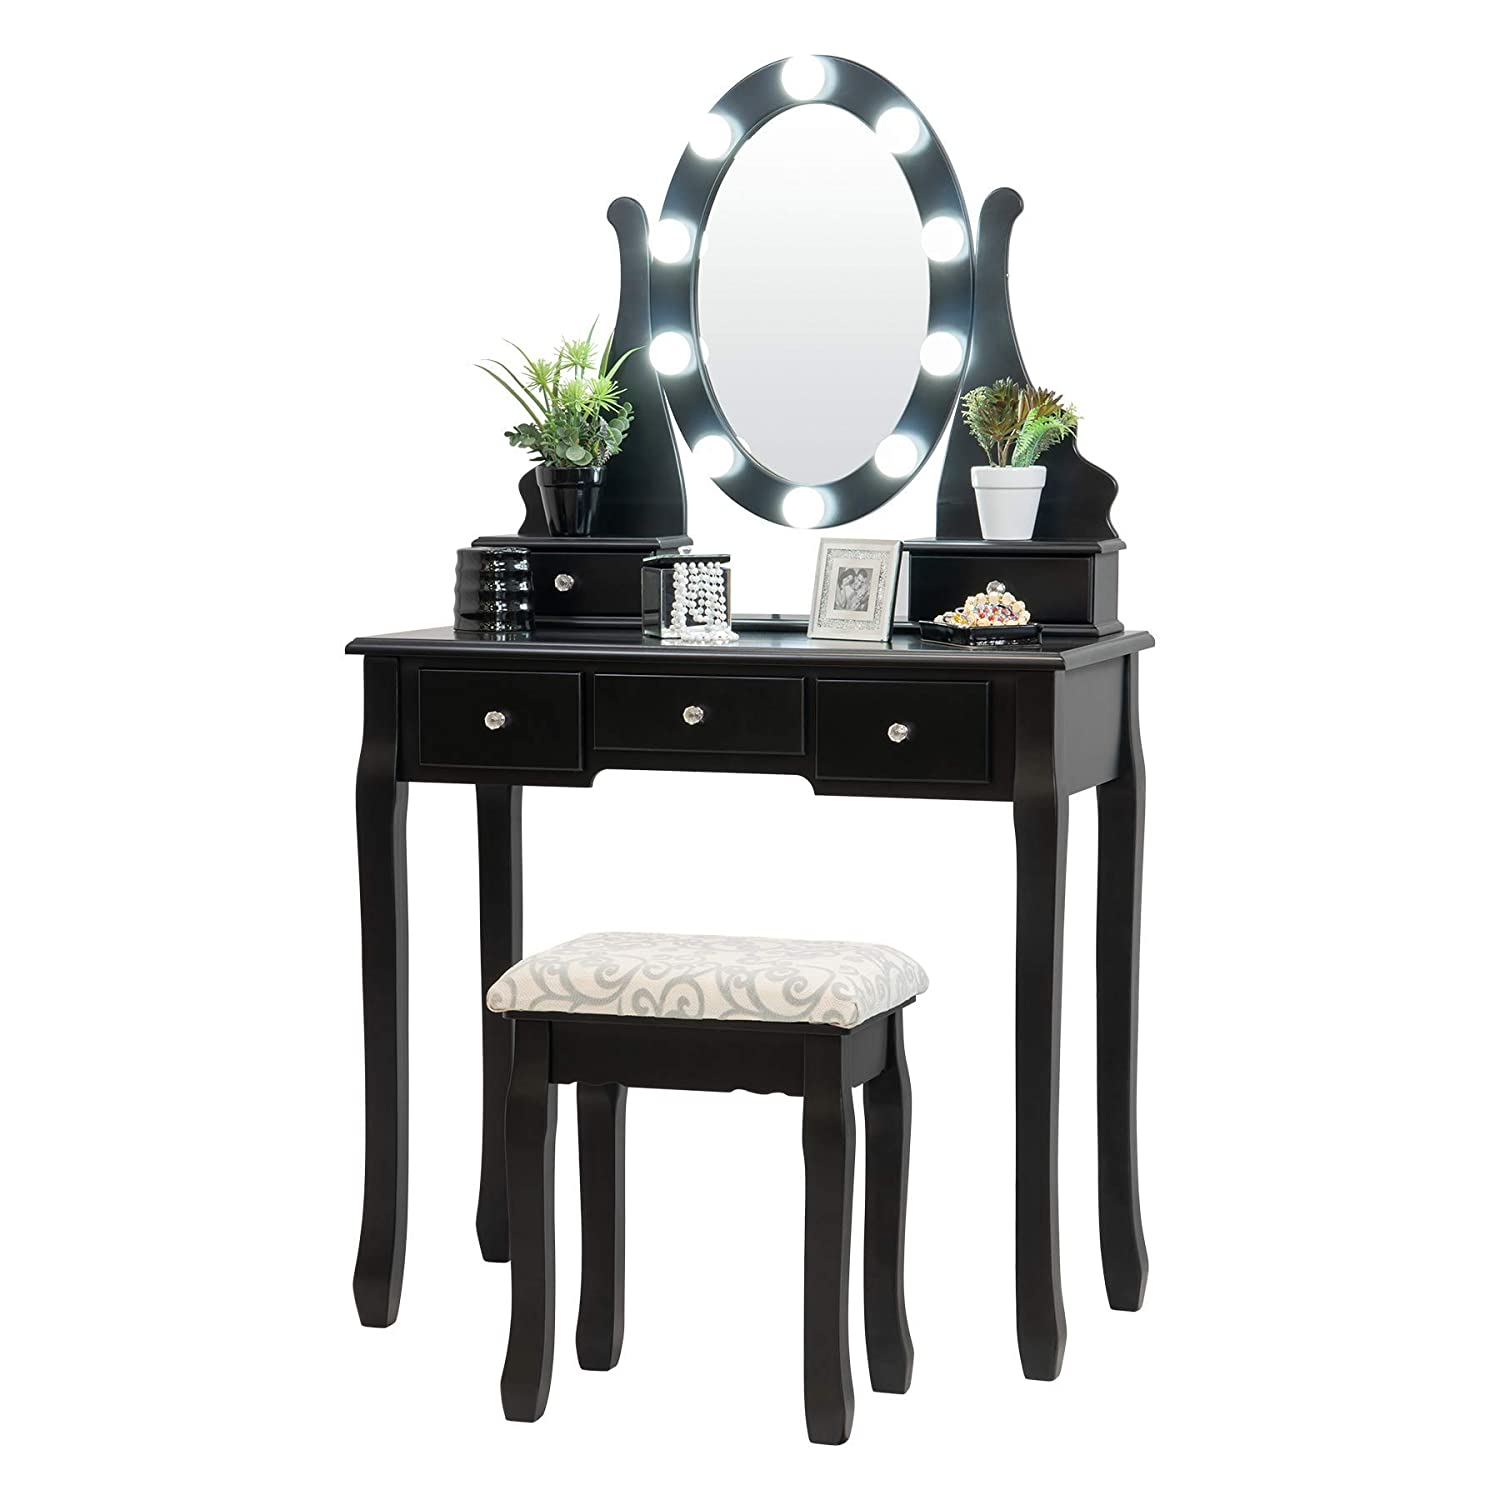 Amazon com fineboard fb vt21 bk dressing table with stool and led lights with 5 drawers and mirror black kitchen dining